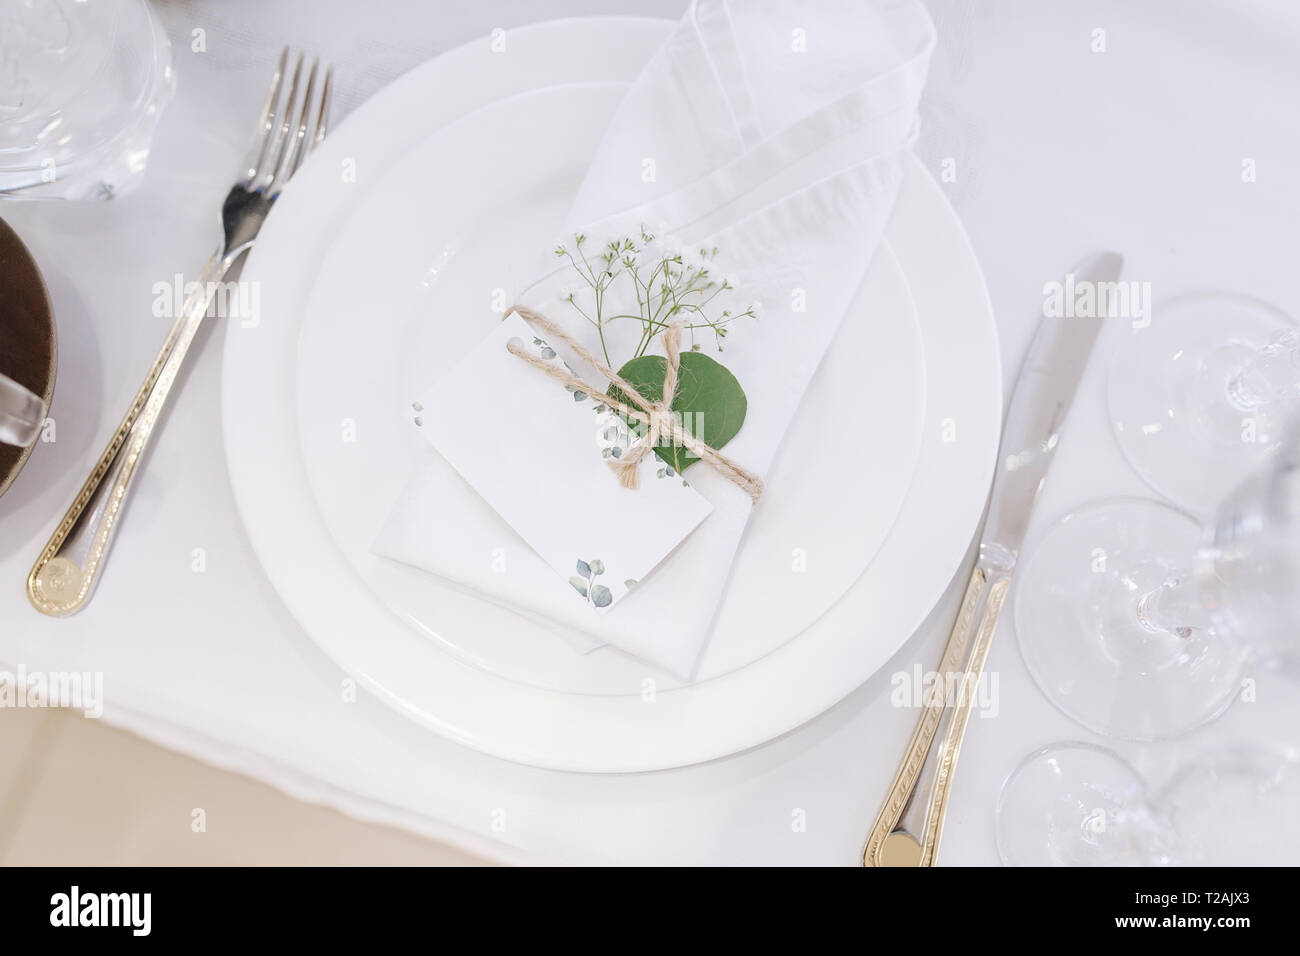 Wedding Place Setting With Napkin On Plate Stock Photo Alamy